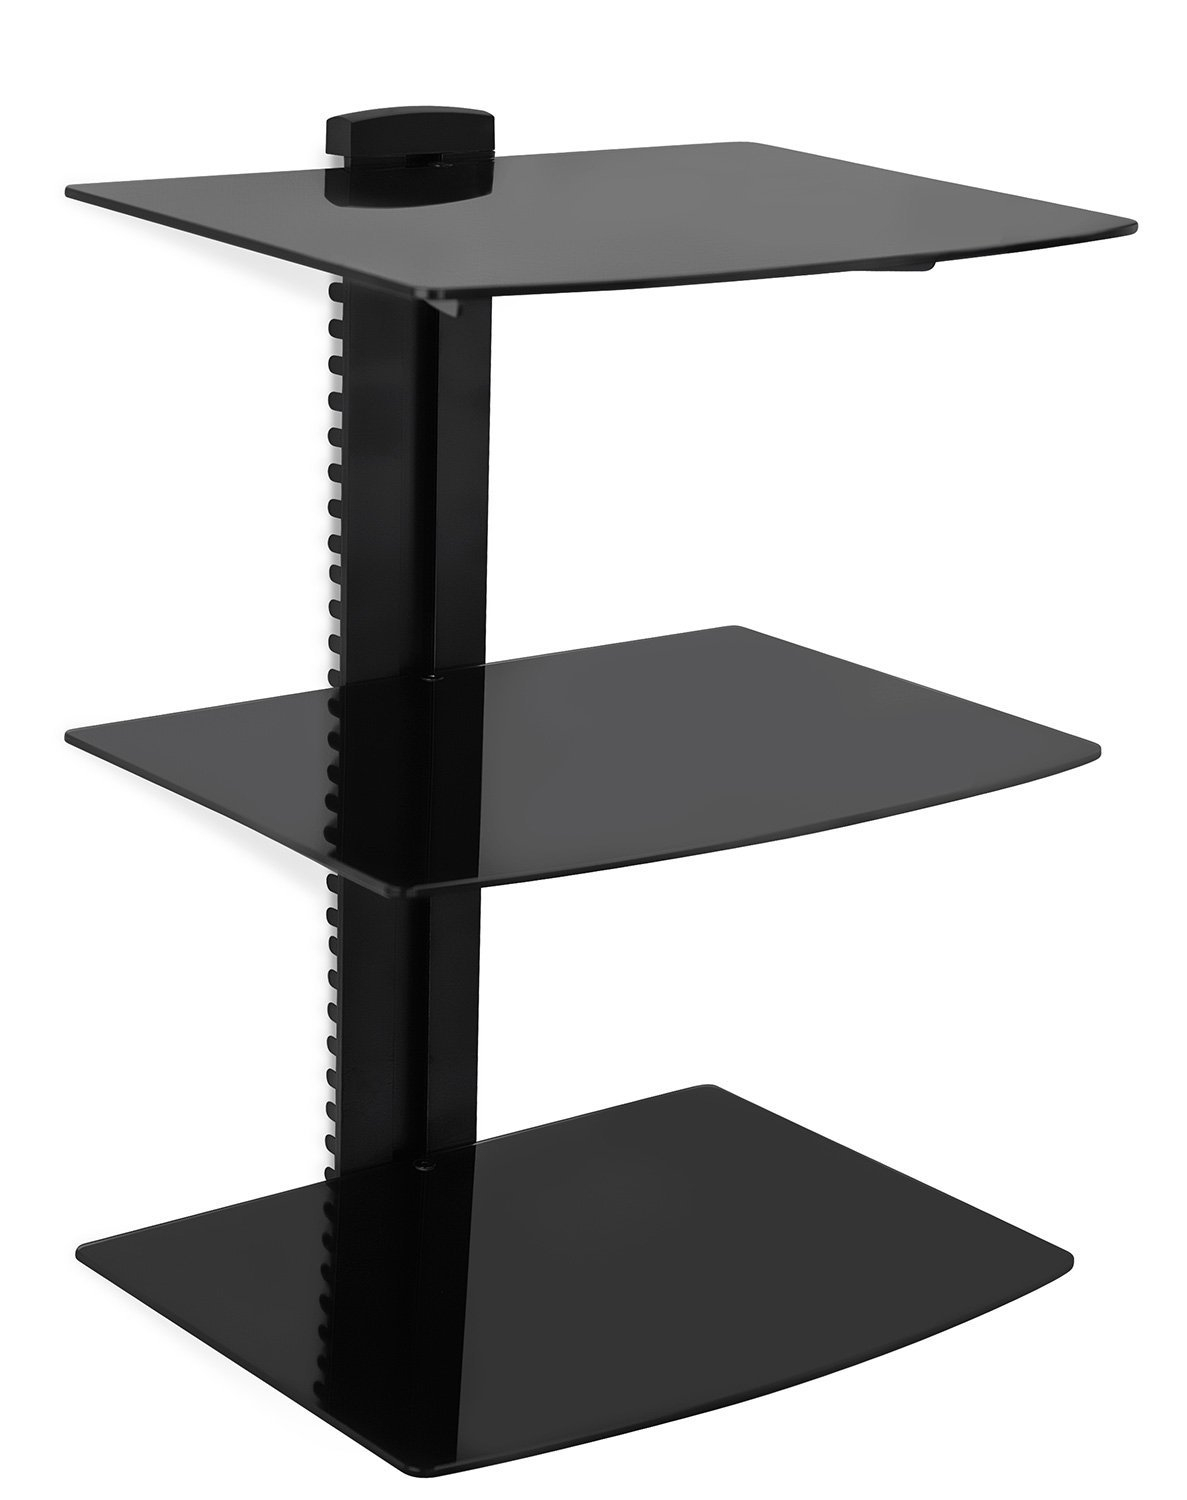 Amazon Mount It Wall Mounted Av Component Shelving System Pertaining To Wall Mounted Black Glass Shelves (#2 of 15)